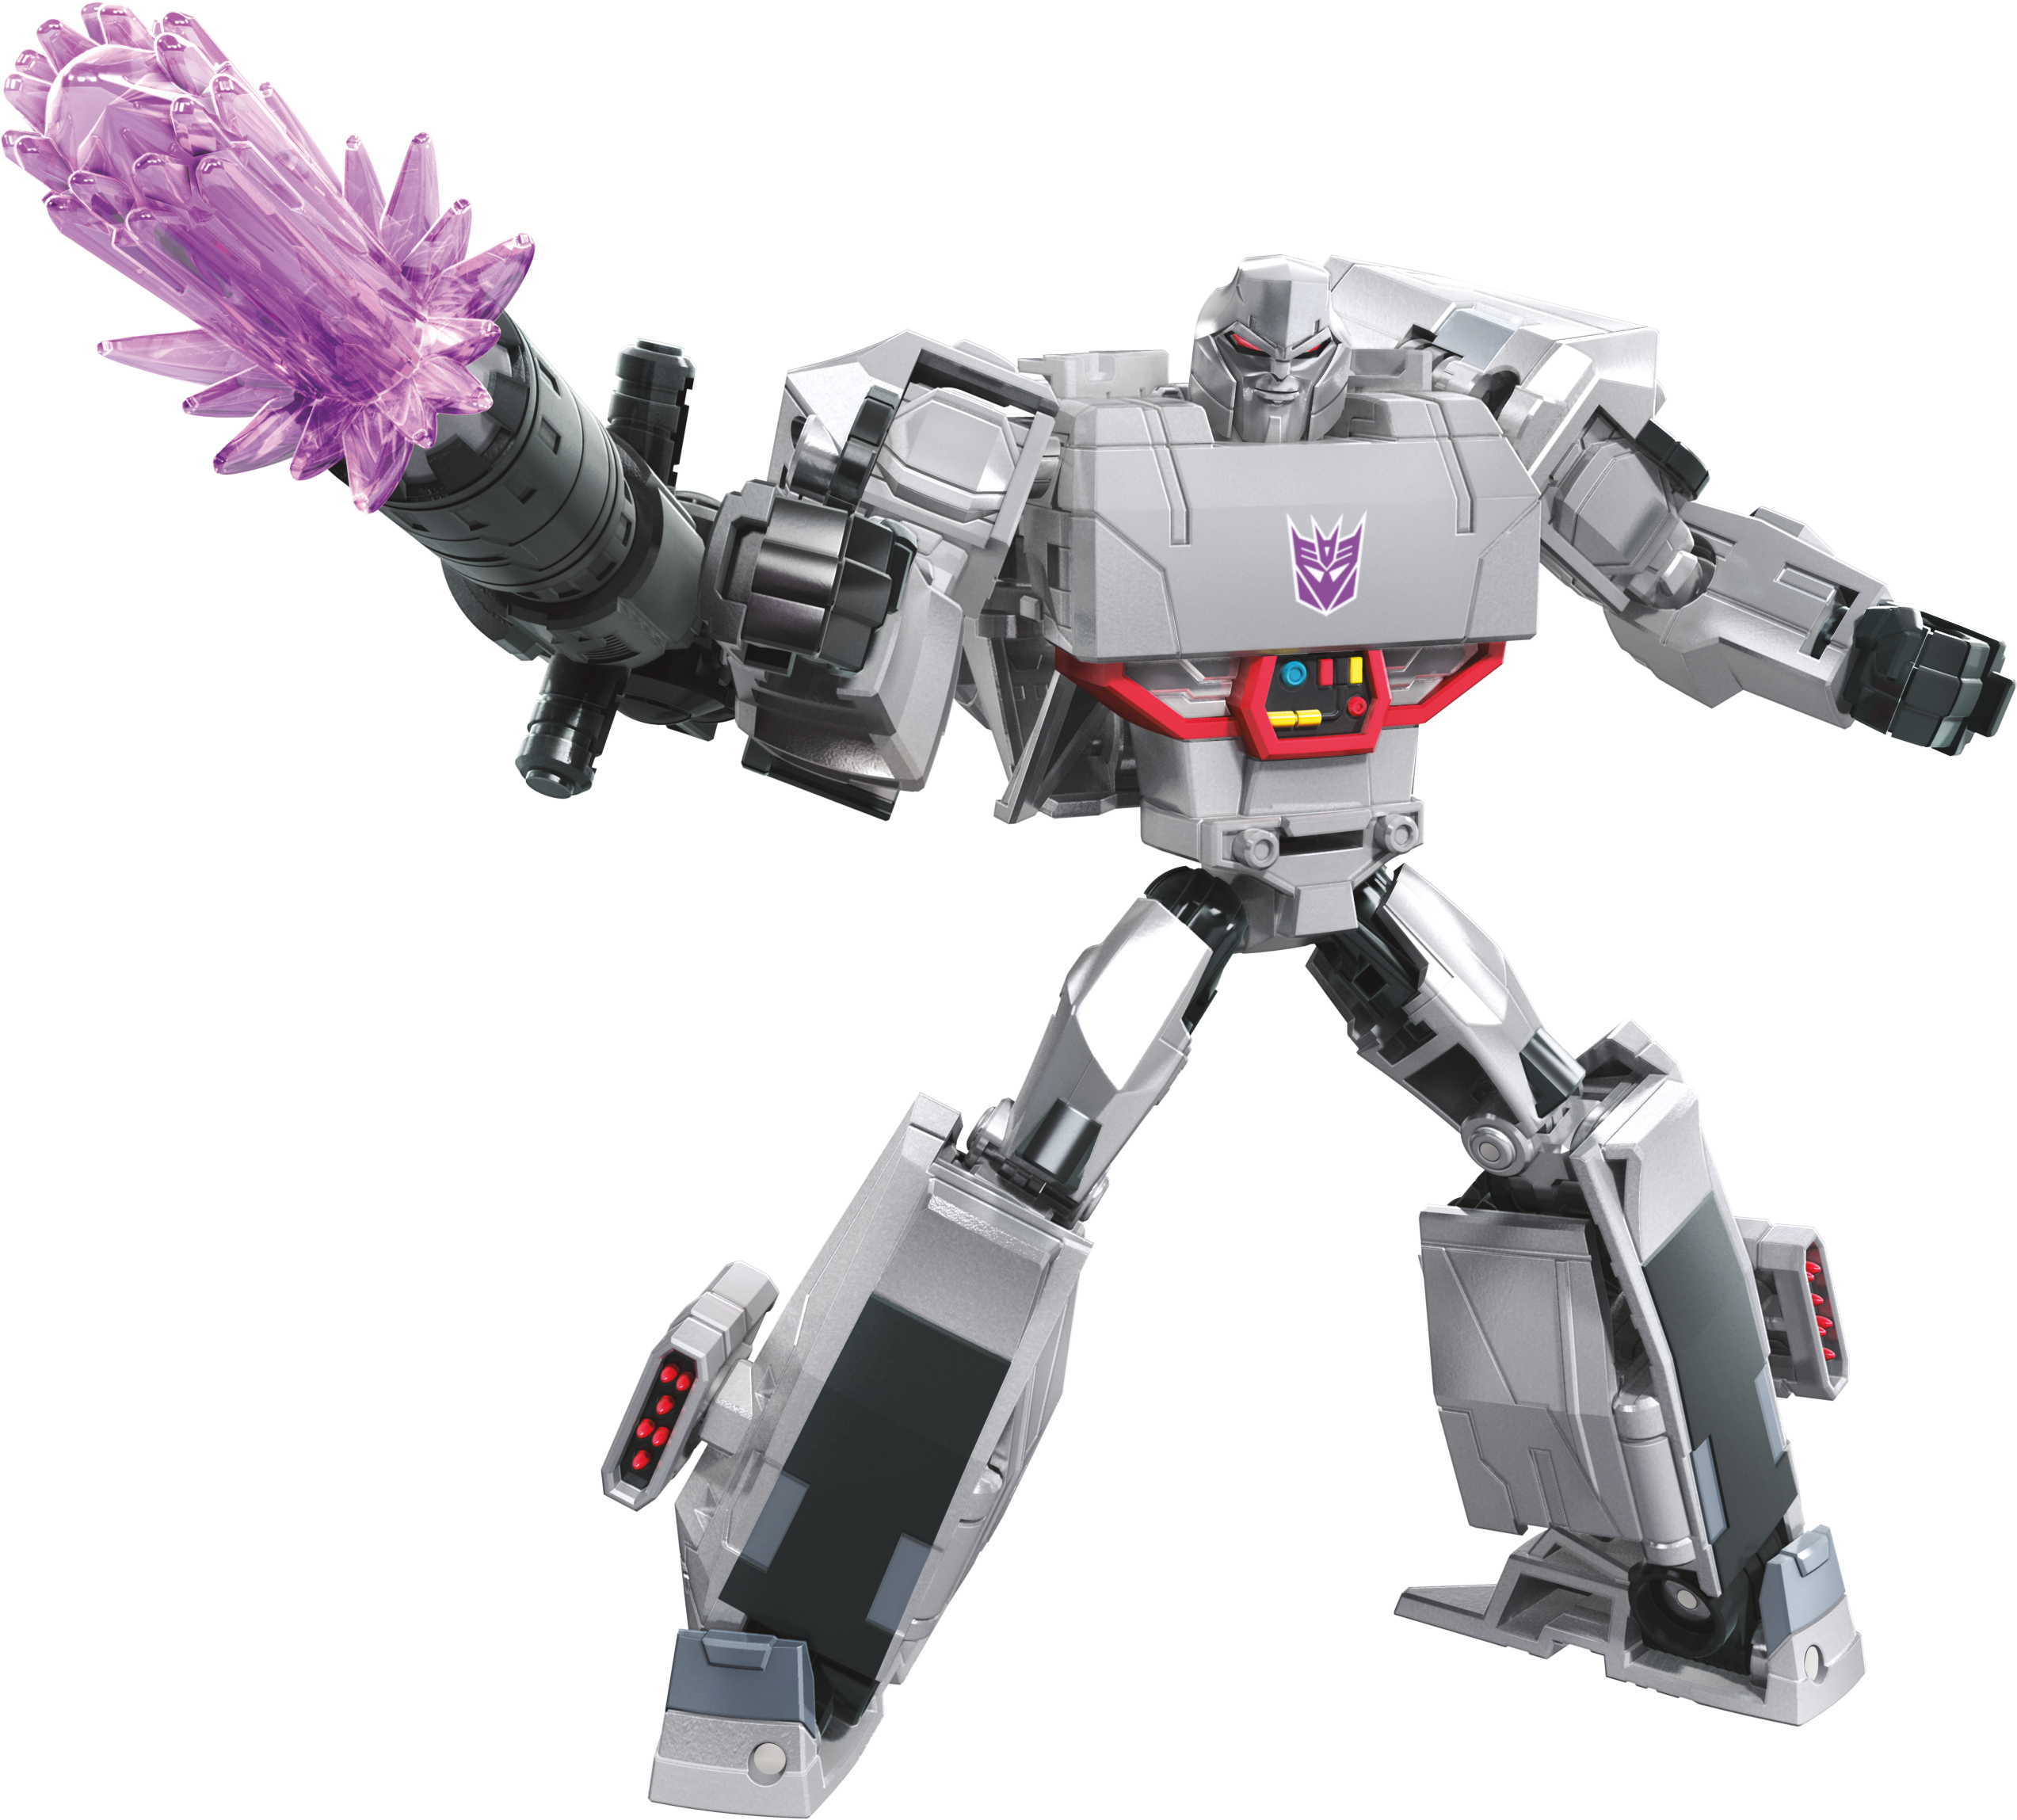 Transformers Cyberverse New Maccadam Build A Figure Wave Official Images Transformers News Tfw2005